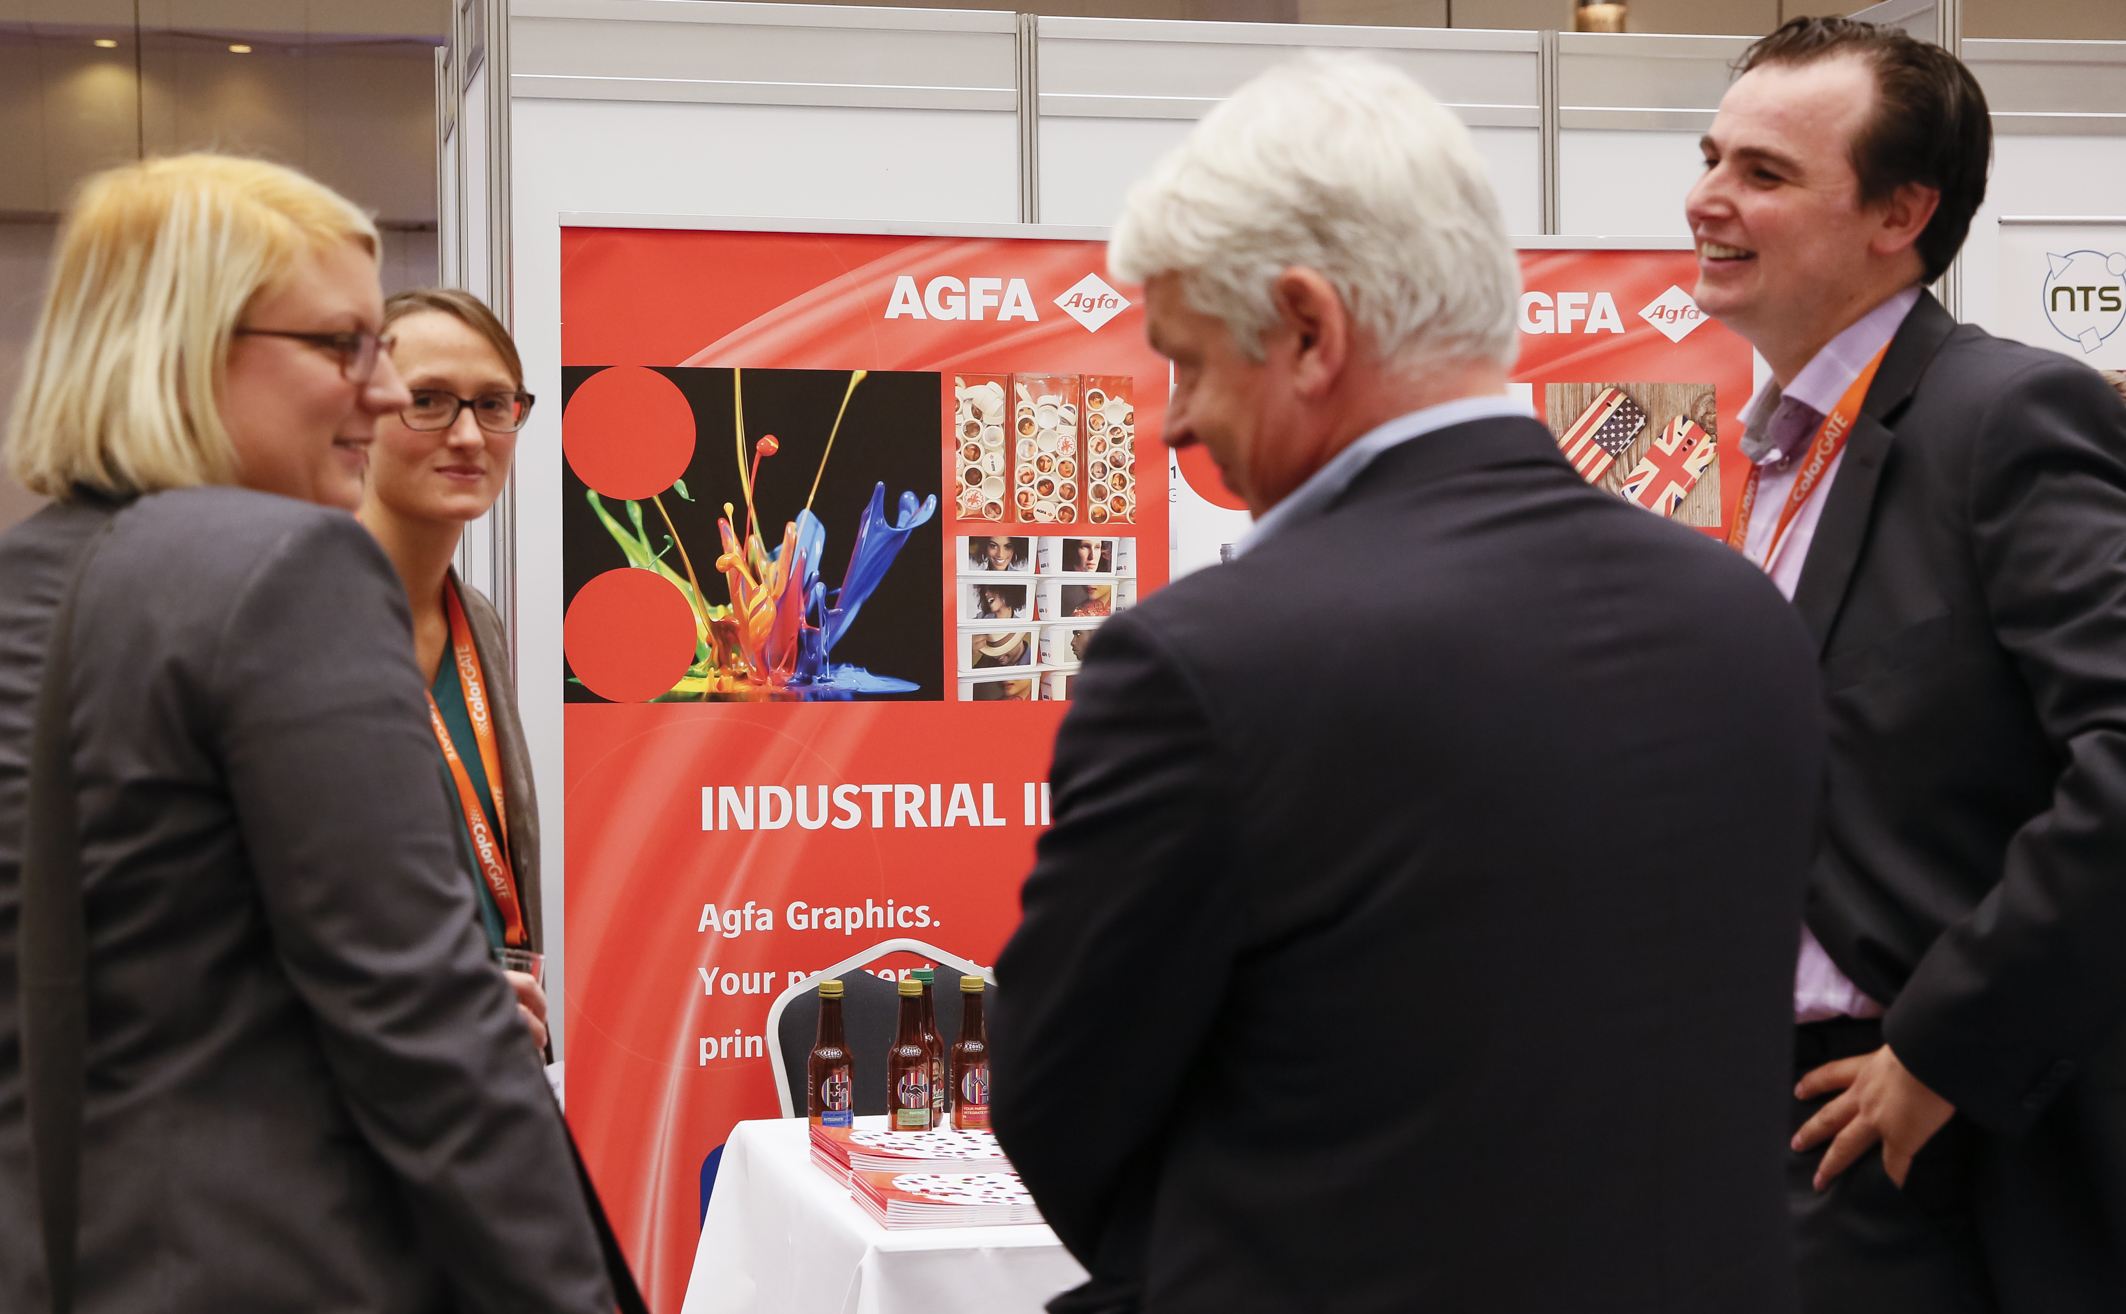 Agfa's booth at TheIJC